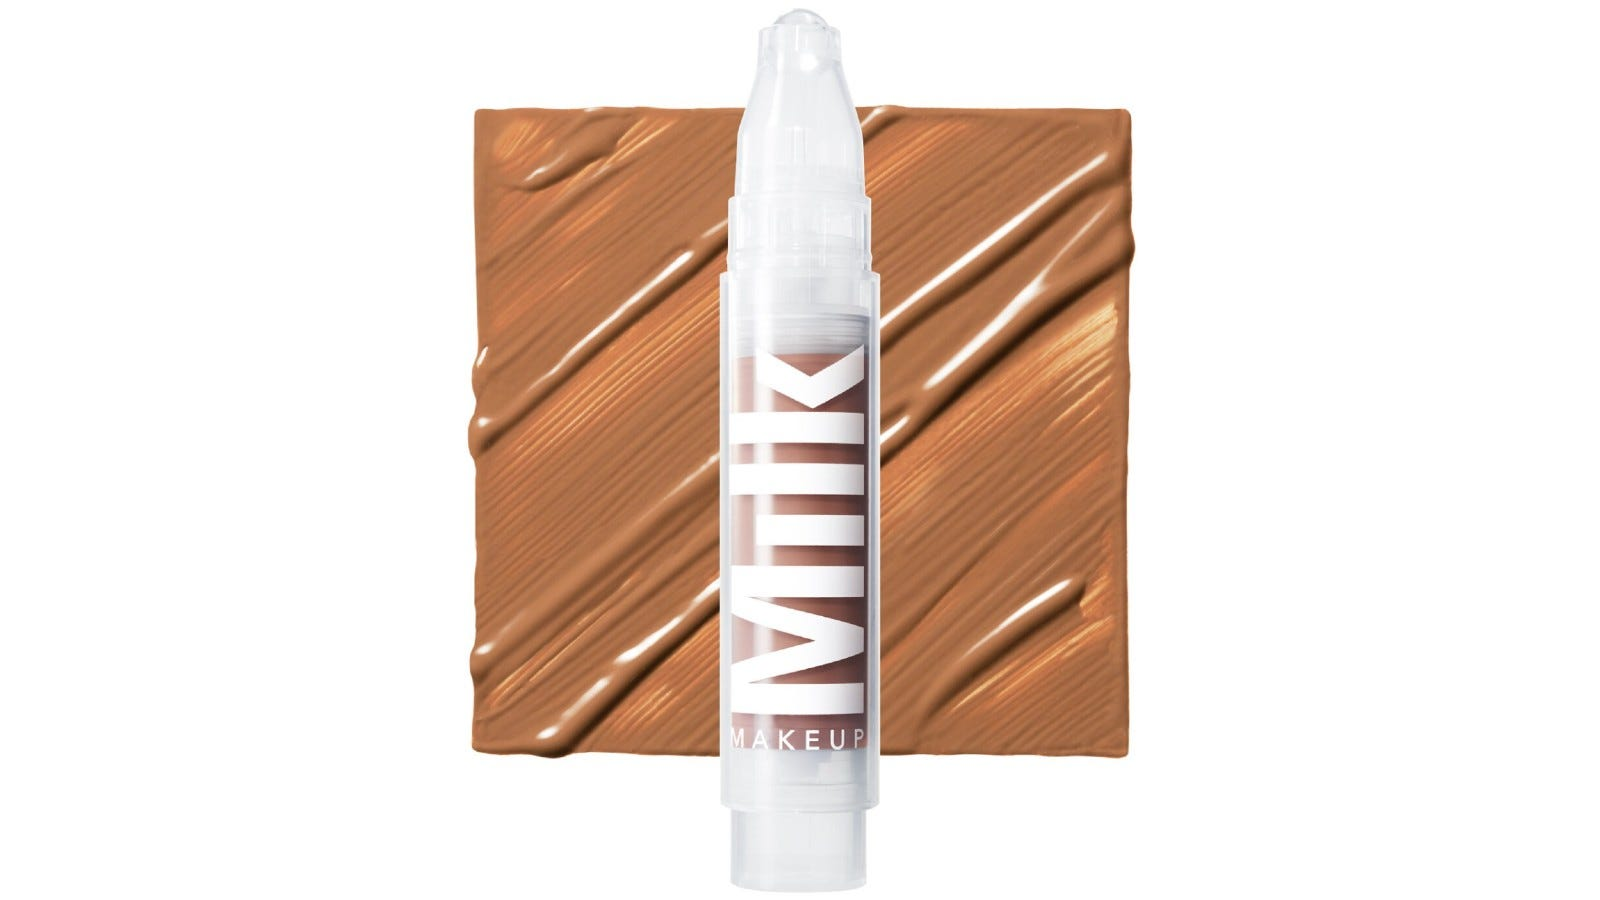 clear Milk Makeup foundation brush over a swatch of the makeup